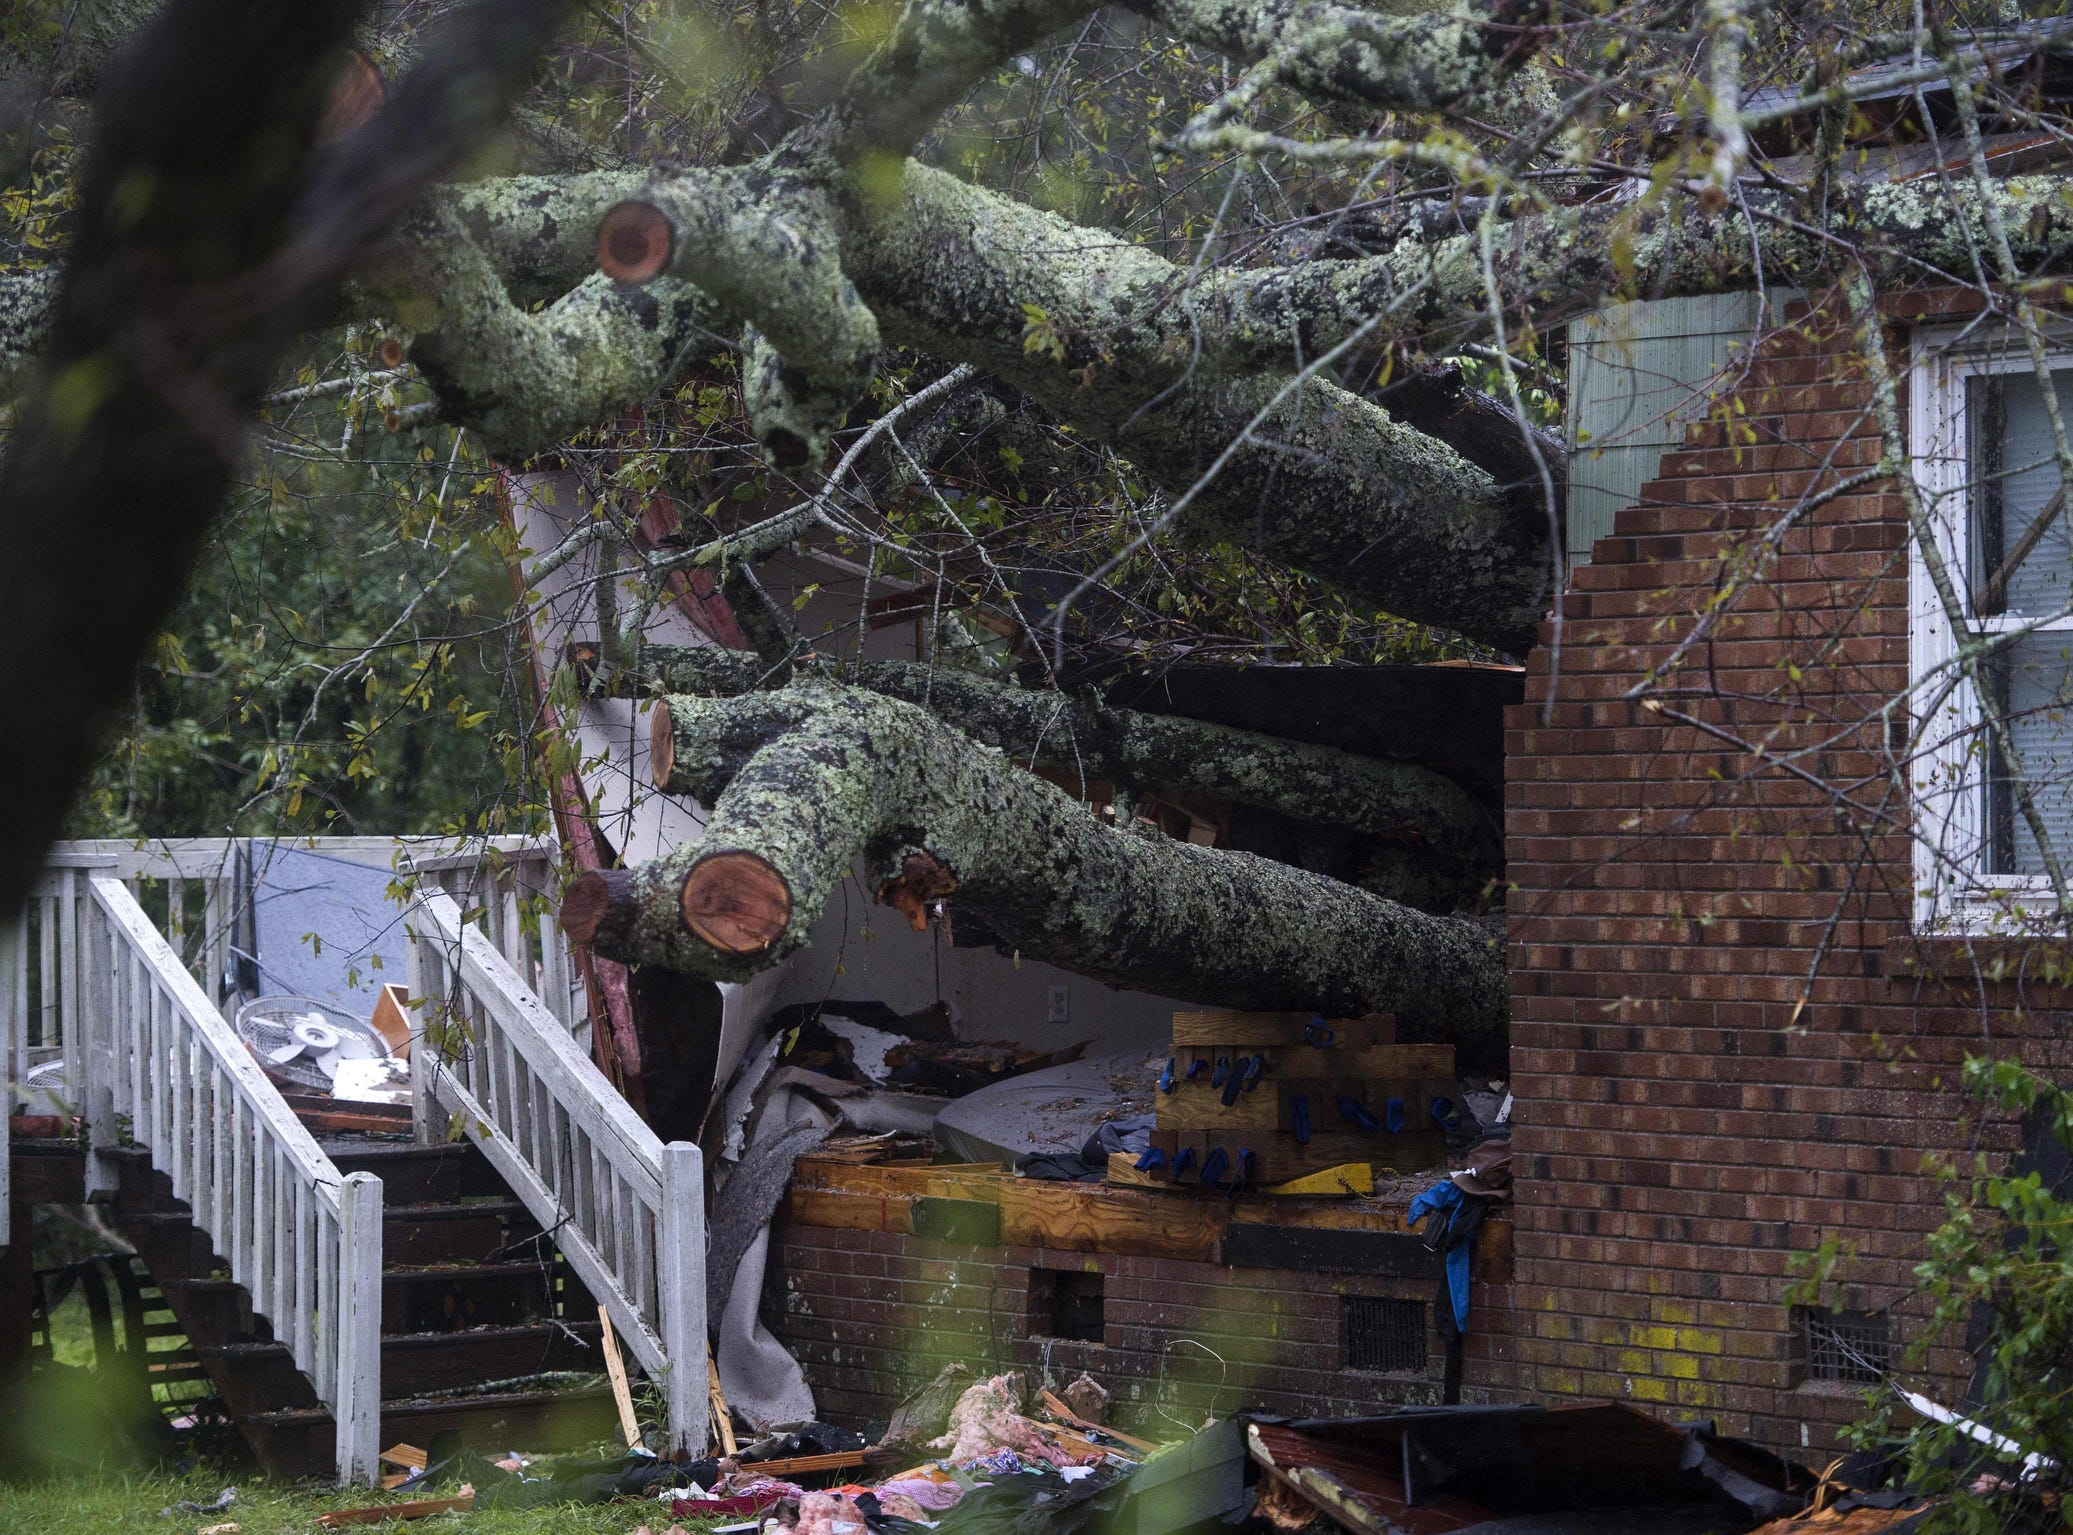 A tree that fell on a house, killing two people, is seen during Hurricane Florence in Wilmington, North Carolina on Sept. 14, 2018.  A mother and her infant were killed when a tree fell on their house, the first reported fatalities from Hurricane Florence, police said Friday. Wilmington police tweeted that the father was transported to the hospital with unspecified injuries.